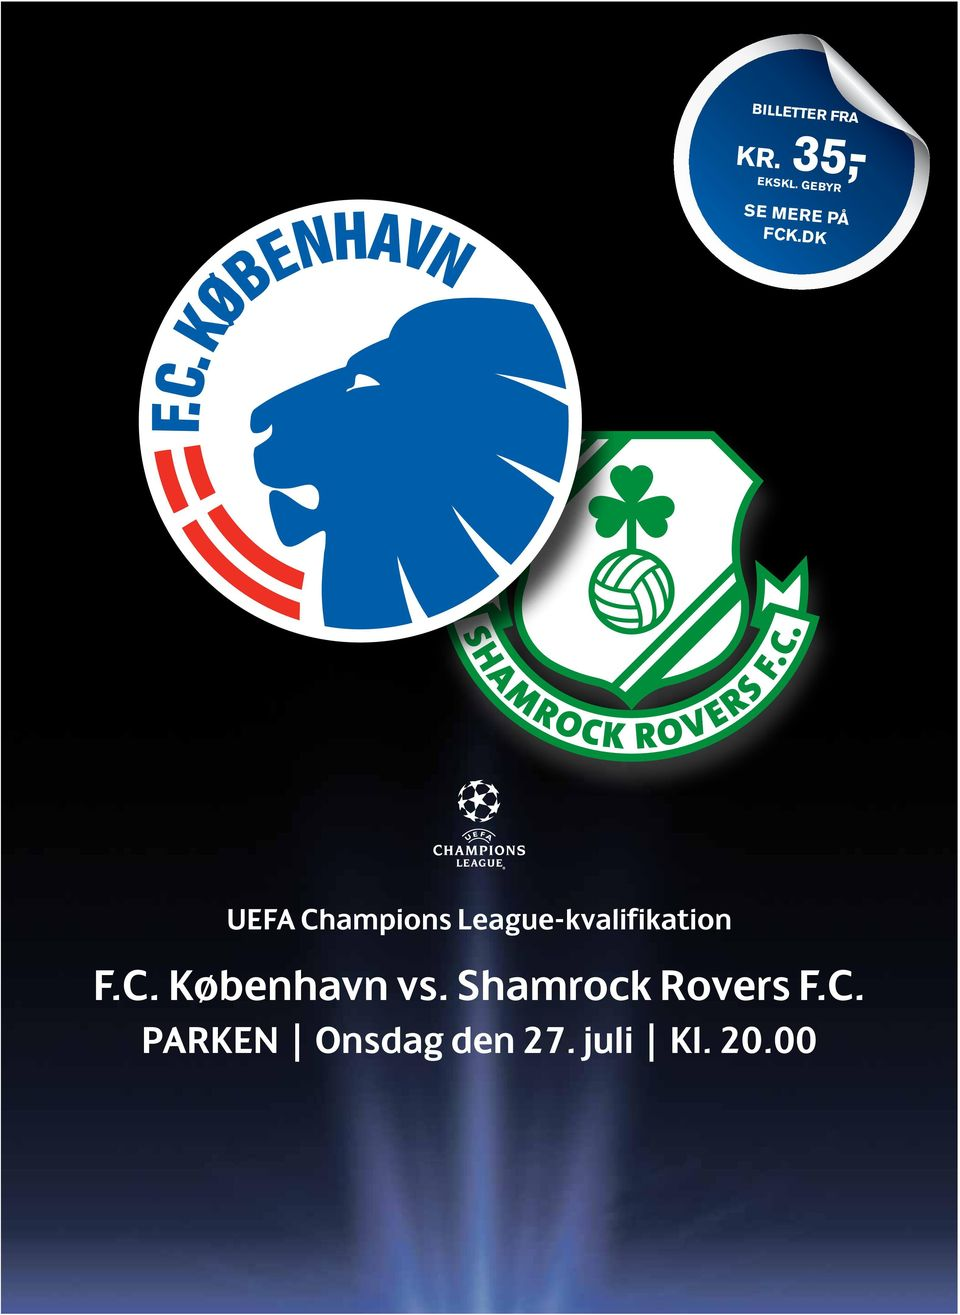 dk UEFA Champions League-kvalifikation F.